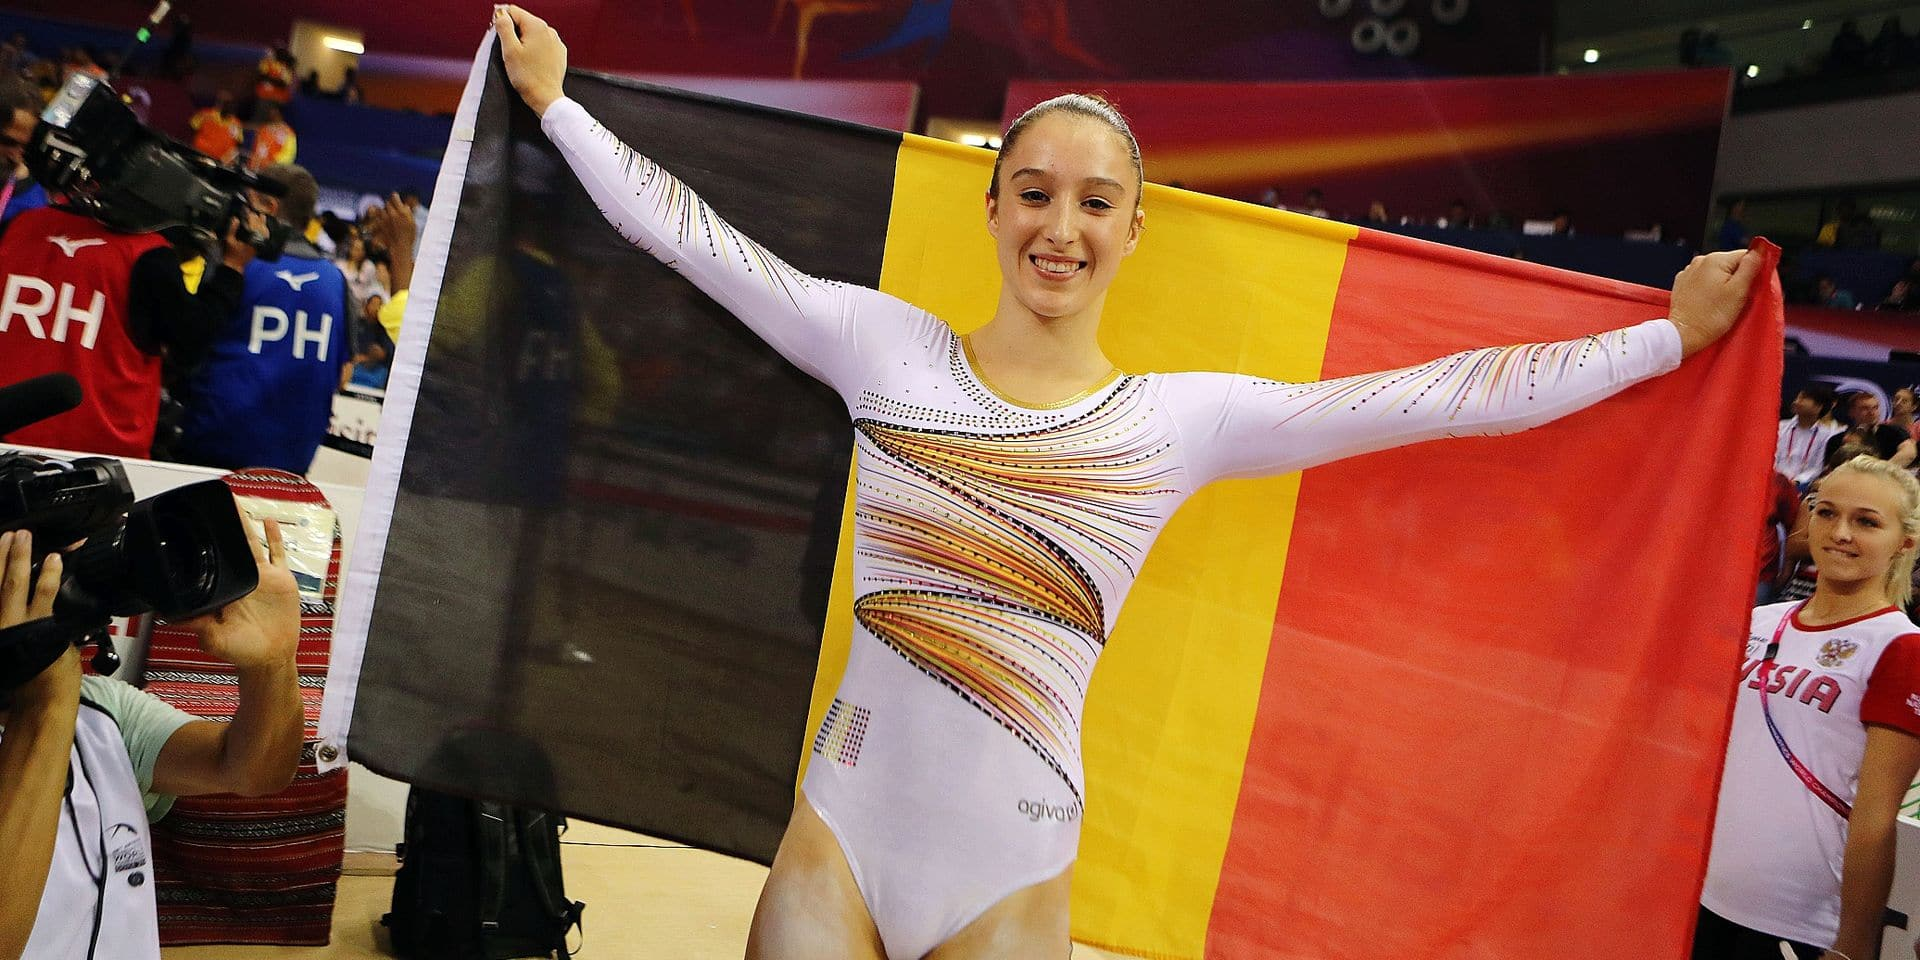 Nina Derwael of Belgium celebrates after winning gold on the uneven bars during day nine of the 2018 FIG Artistic Gymnastics Championships at the Aspire Dome on November 2, 2018 in Doha, Qatar. (Photo by KARIM JAAFAR / AFP)